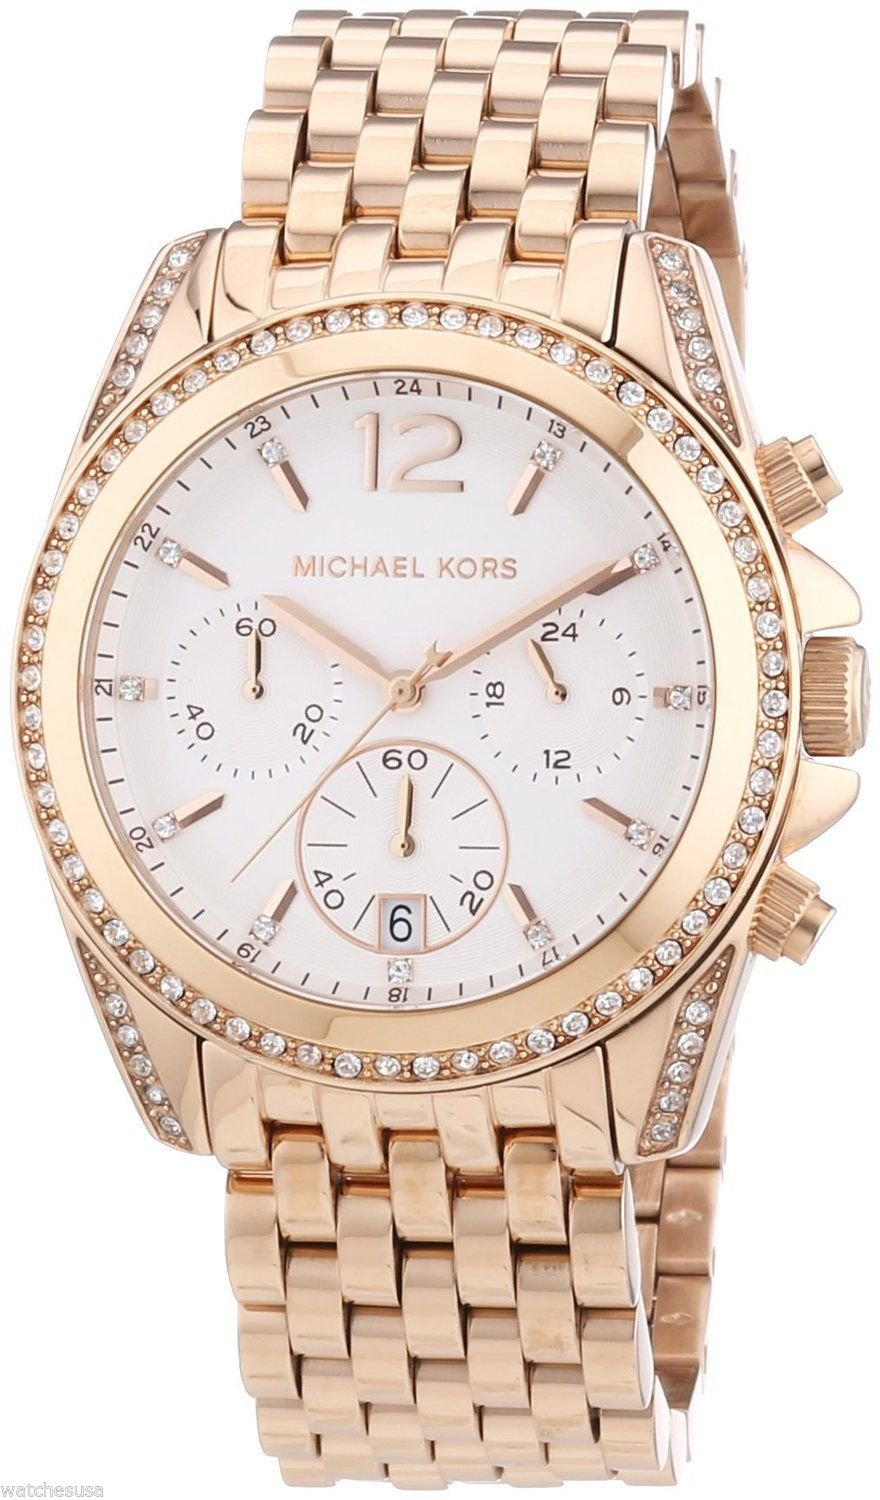 MK5836 BRAND NEW MICHAEL KORS PRESSLEY LADIES CHRONOGRAPH ROSE GOLD 39MM WATCH